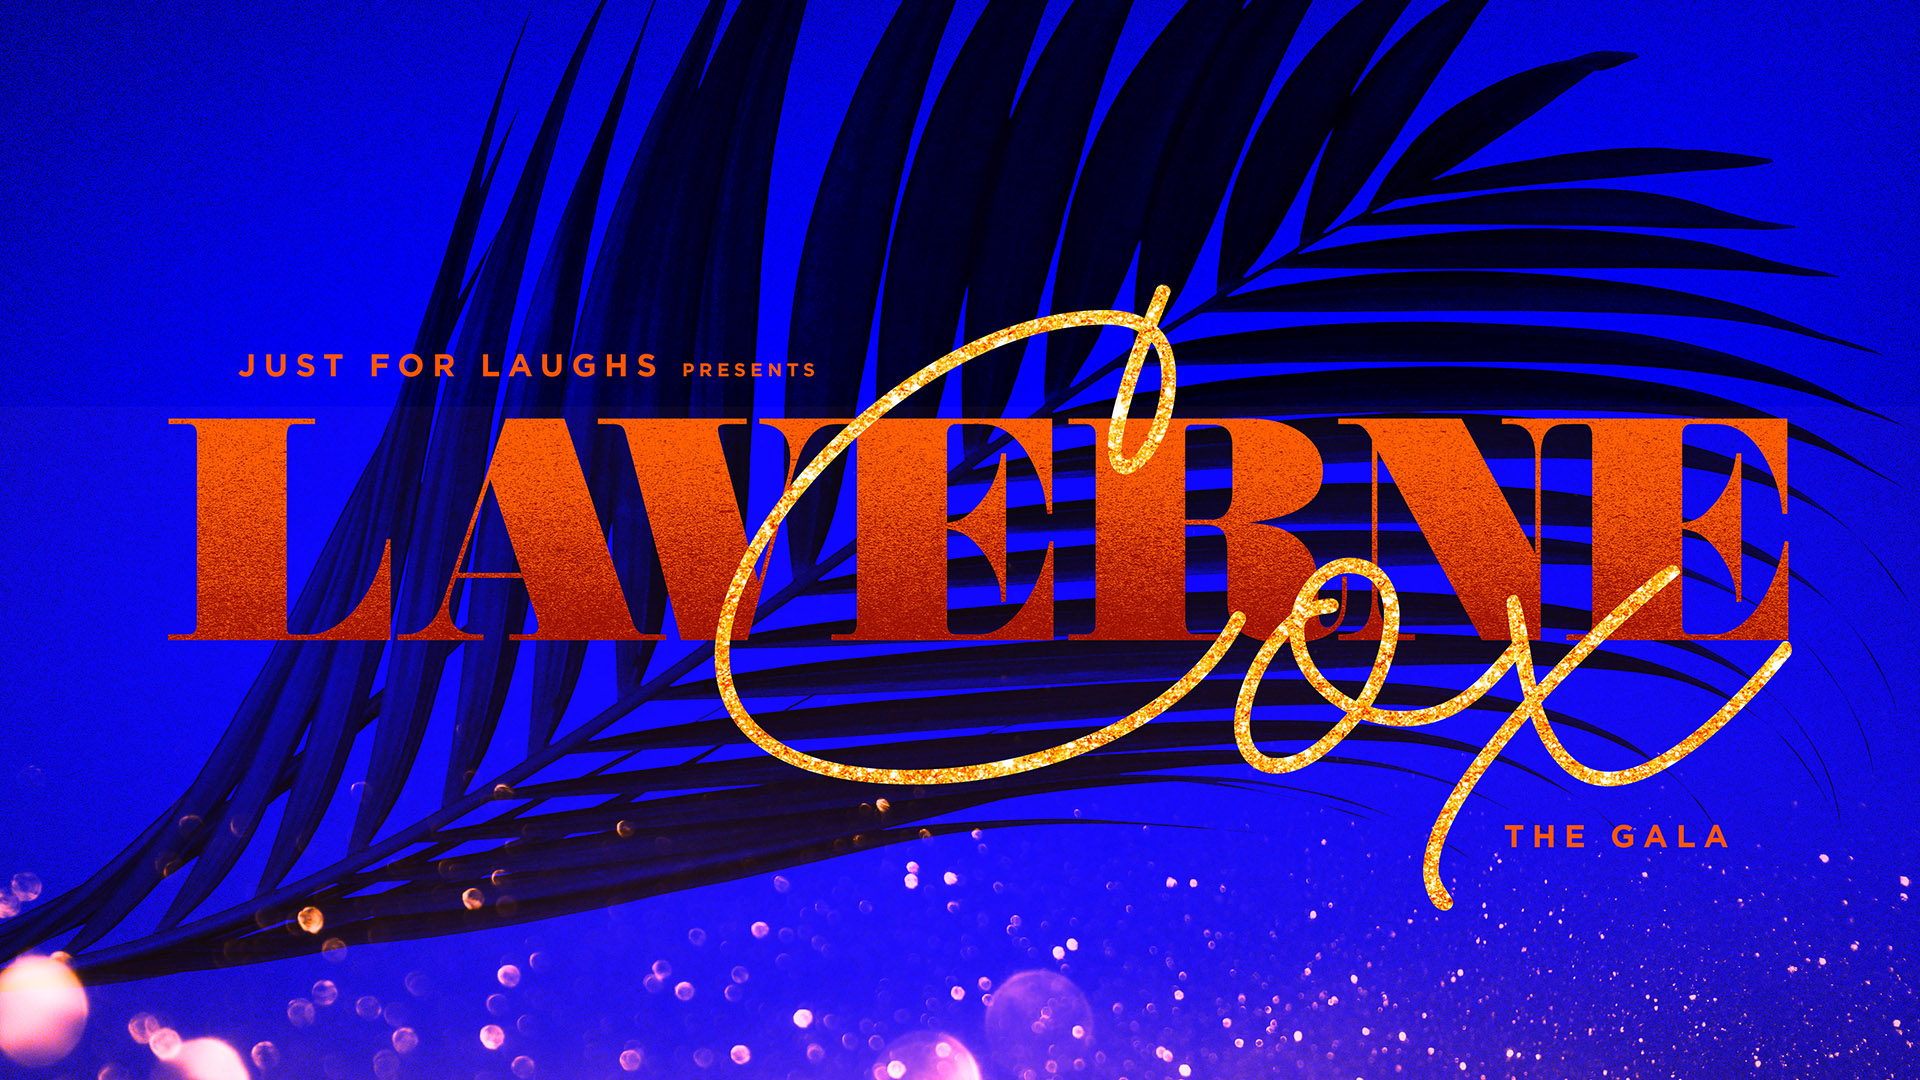 The Laverne Cox Gala (pitch)